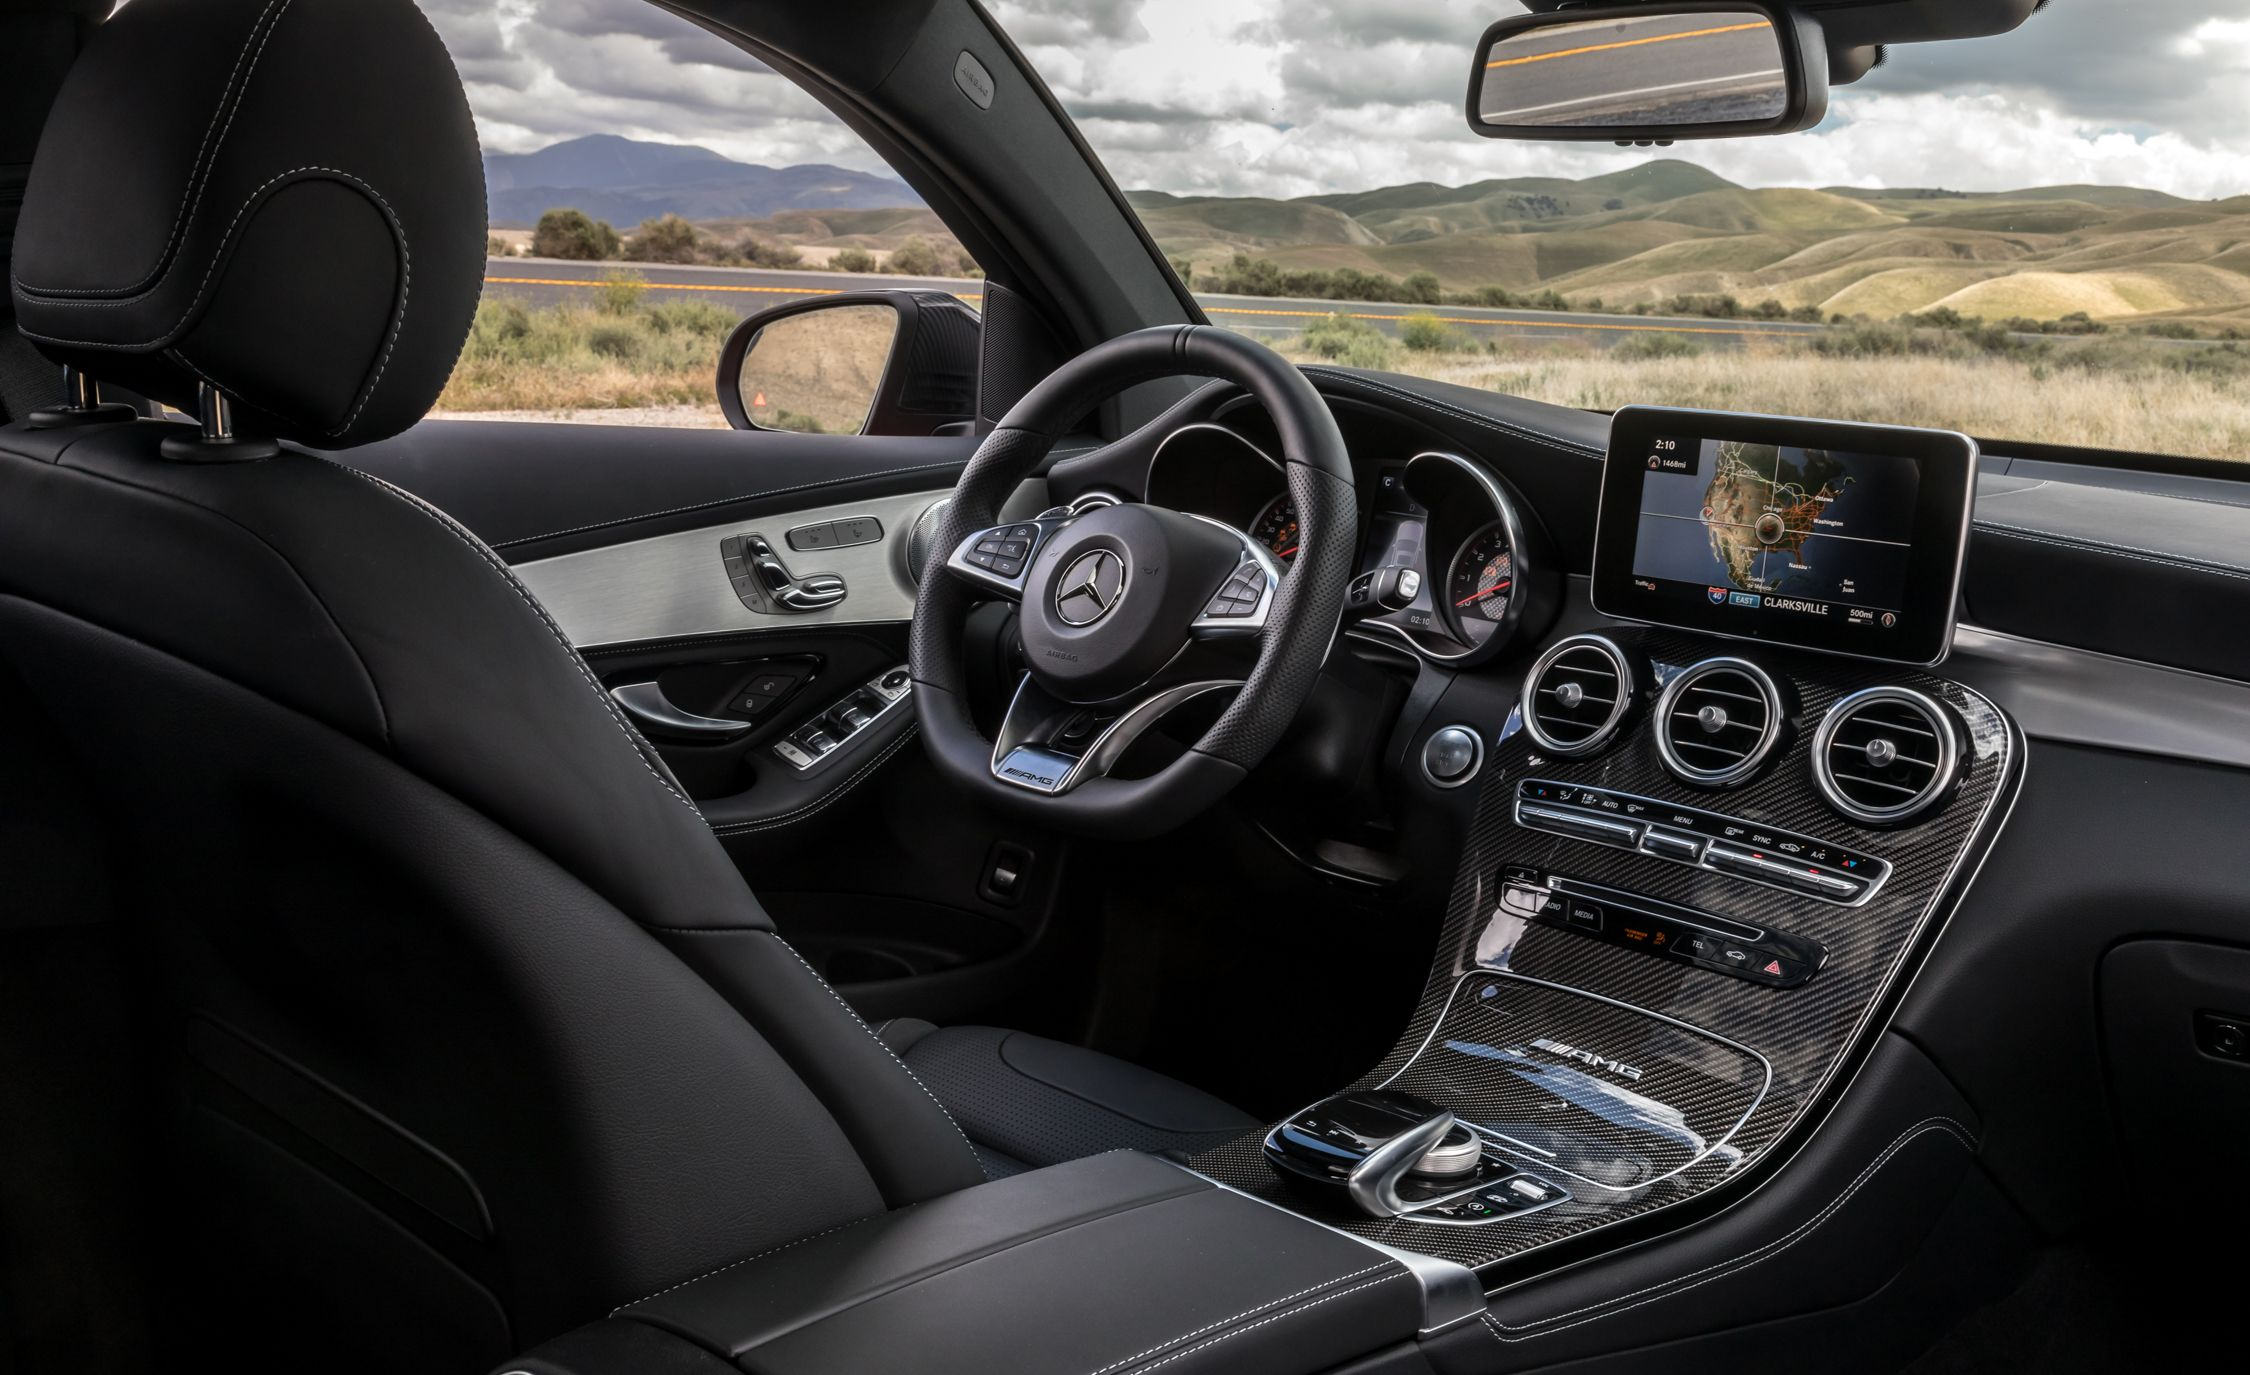 2018 Mercedes Amg Glc43 Coupe Glc63 Coupe Reviews Mercedes Amg